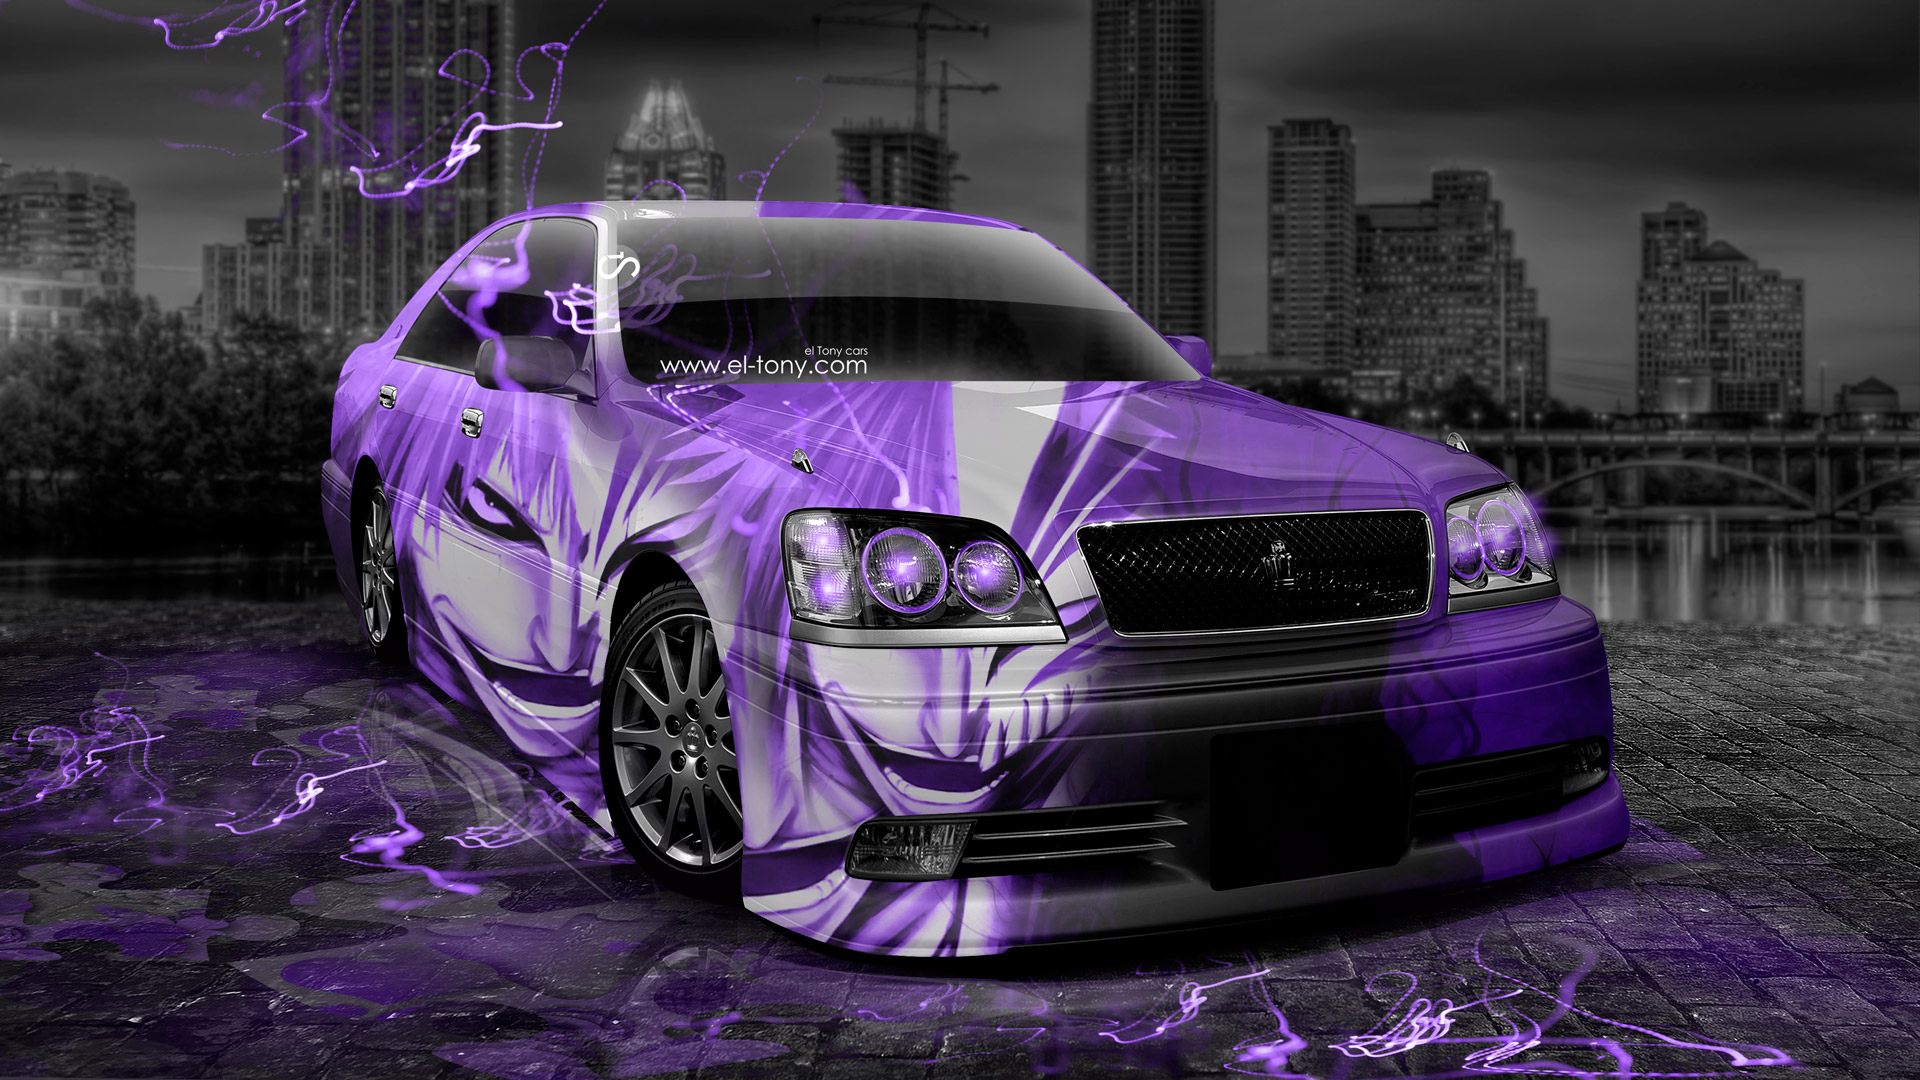 Attirant Toyota Crown Athlete JDM Anime Bleach Aerography City .